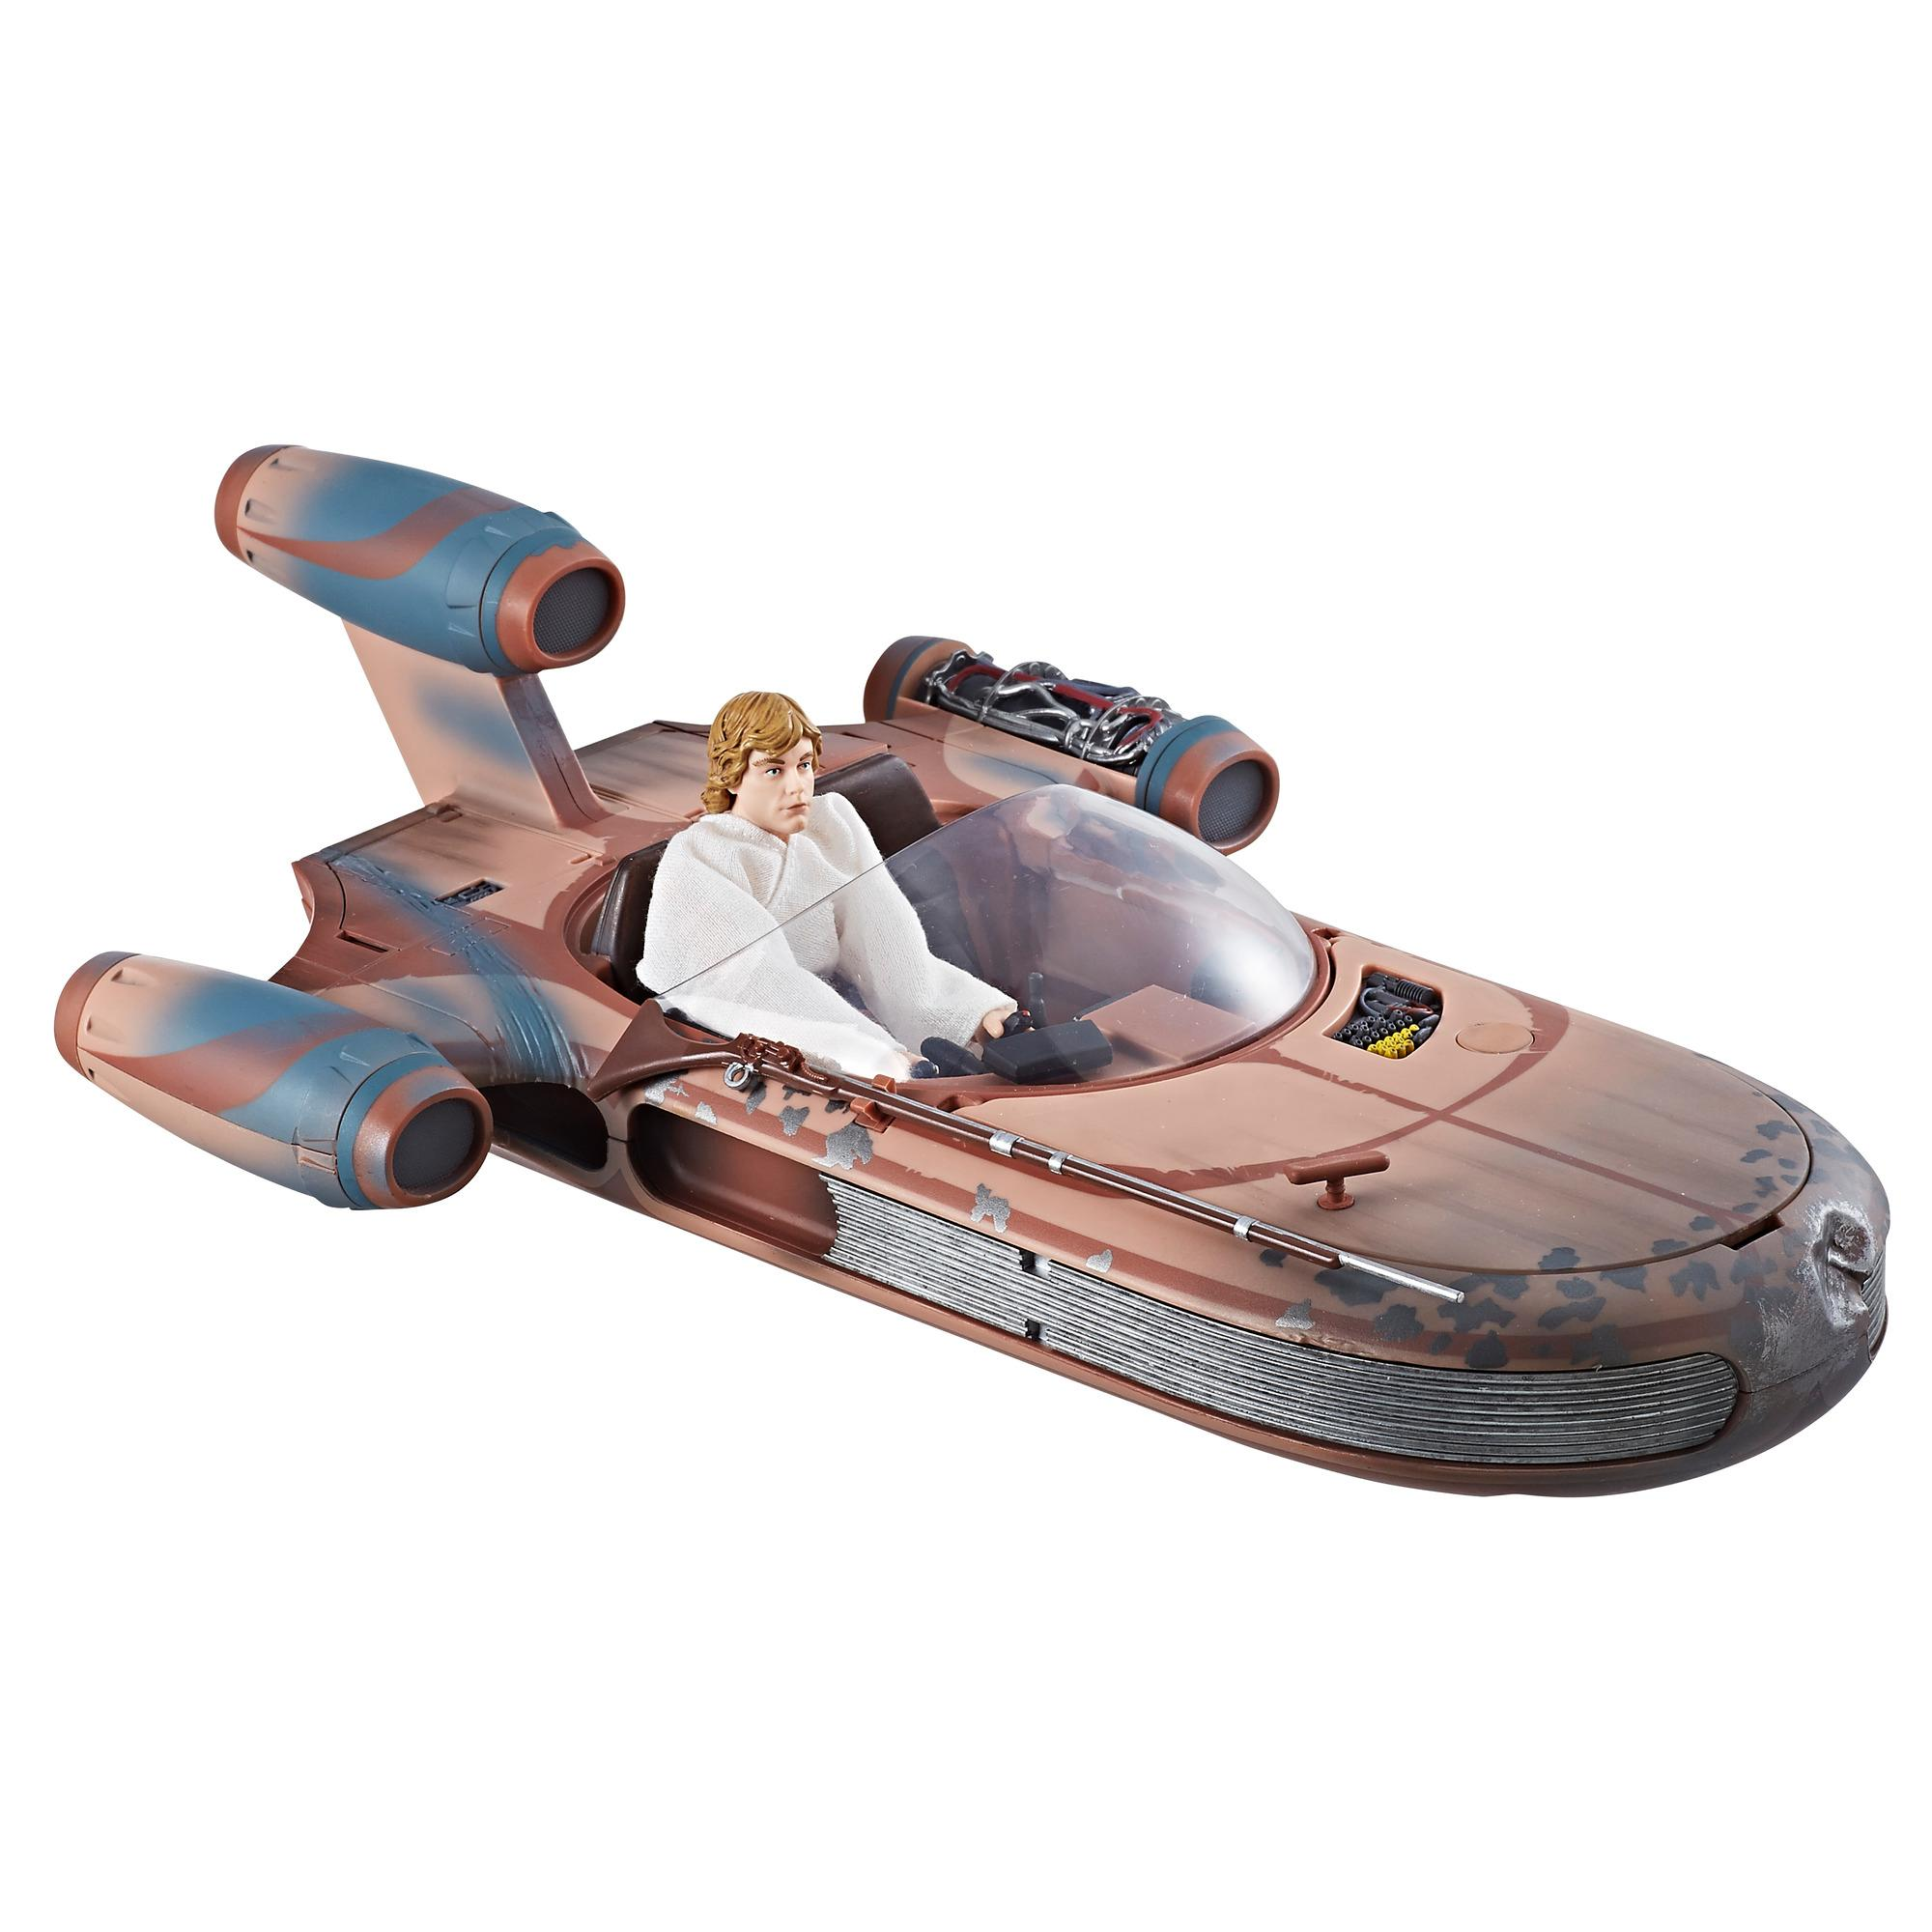 Star Wars The Black Series X-34 Landspeeder & Luke Skywalker Figure